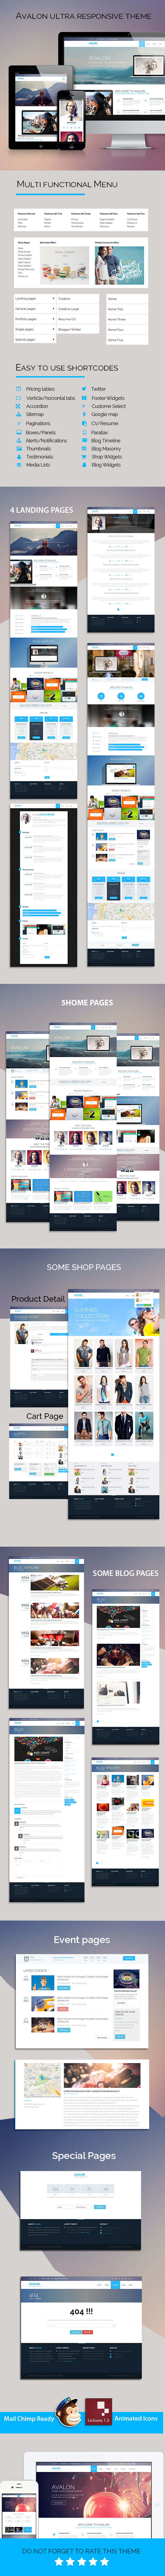 Avalon - Commerce Multipurpose HTML Theme